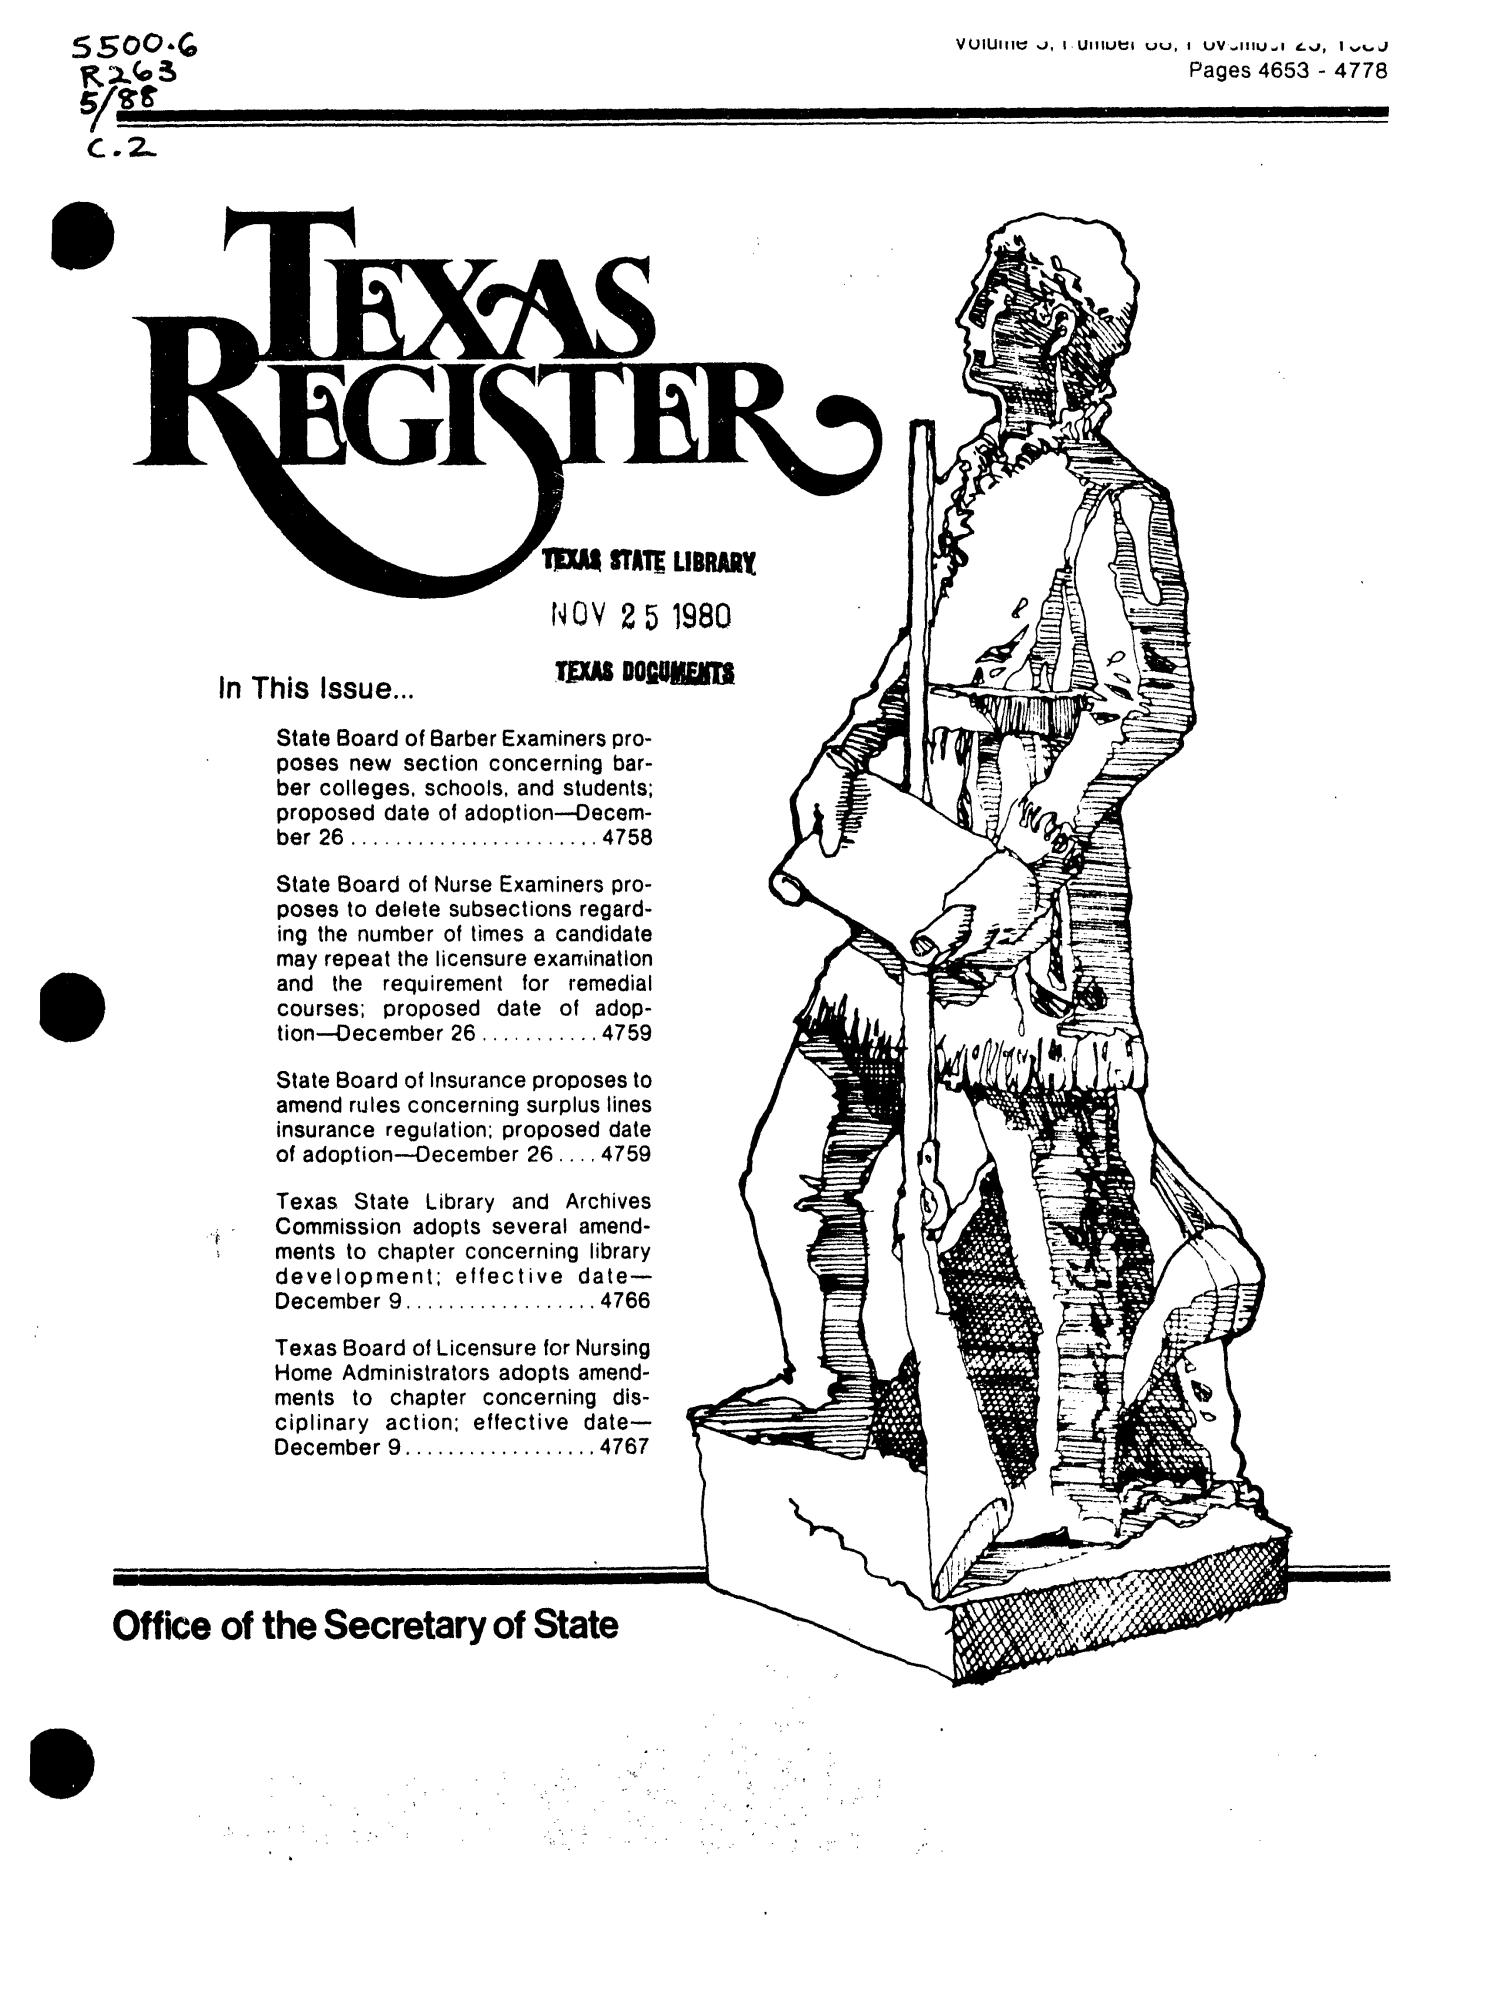 Texas Register, Volume 5, Number 88, Pages 4653-4778